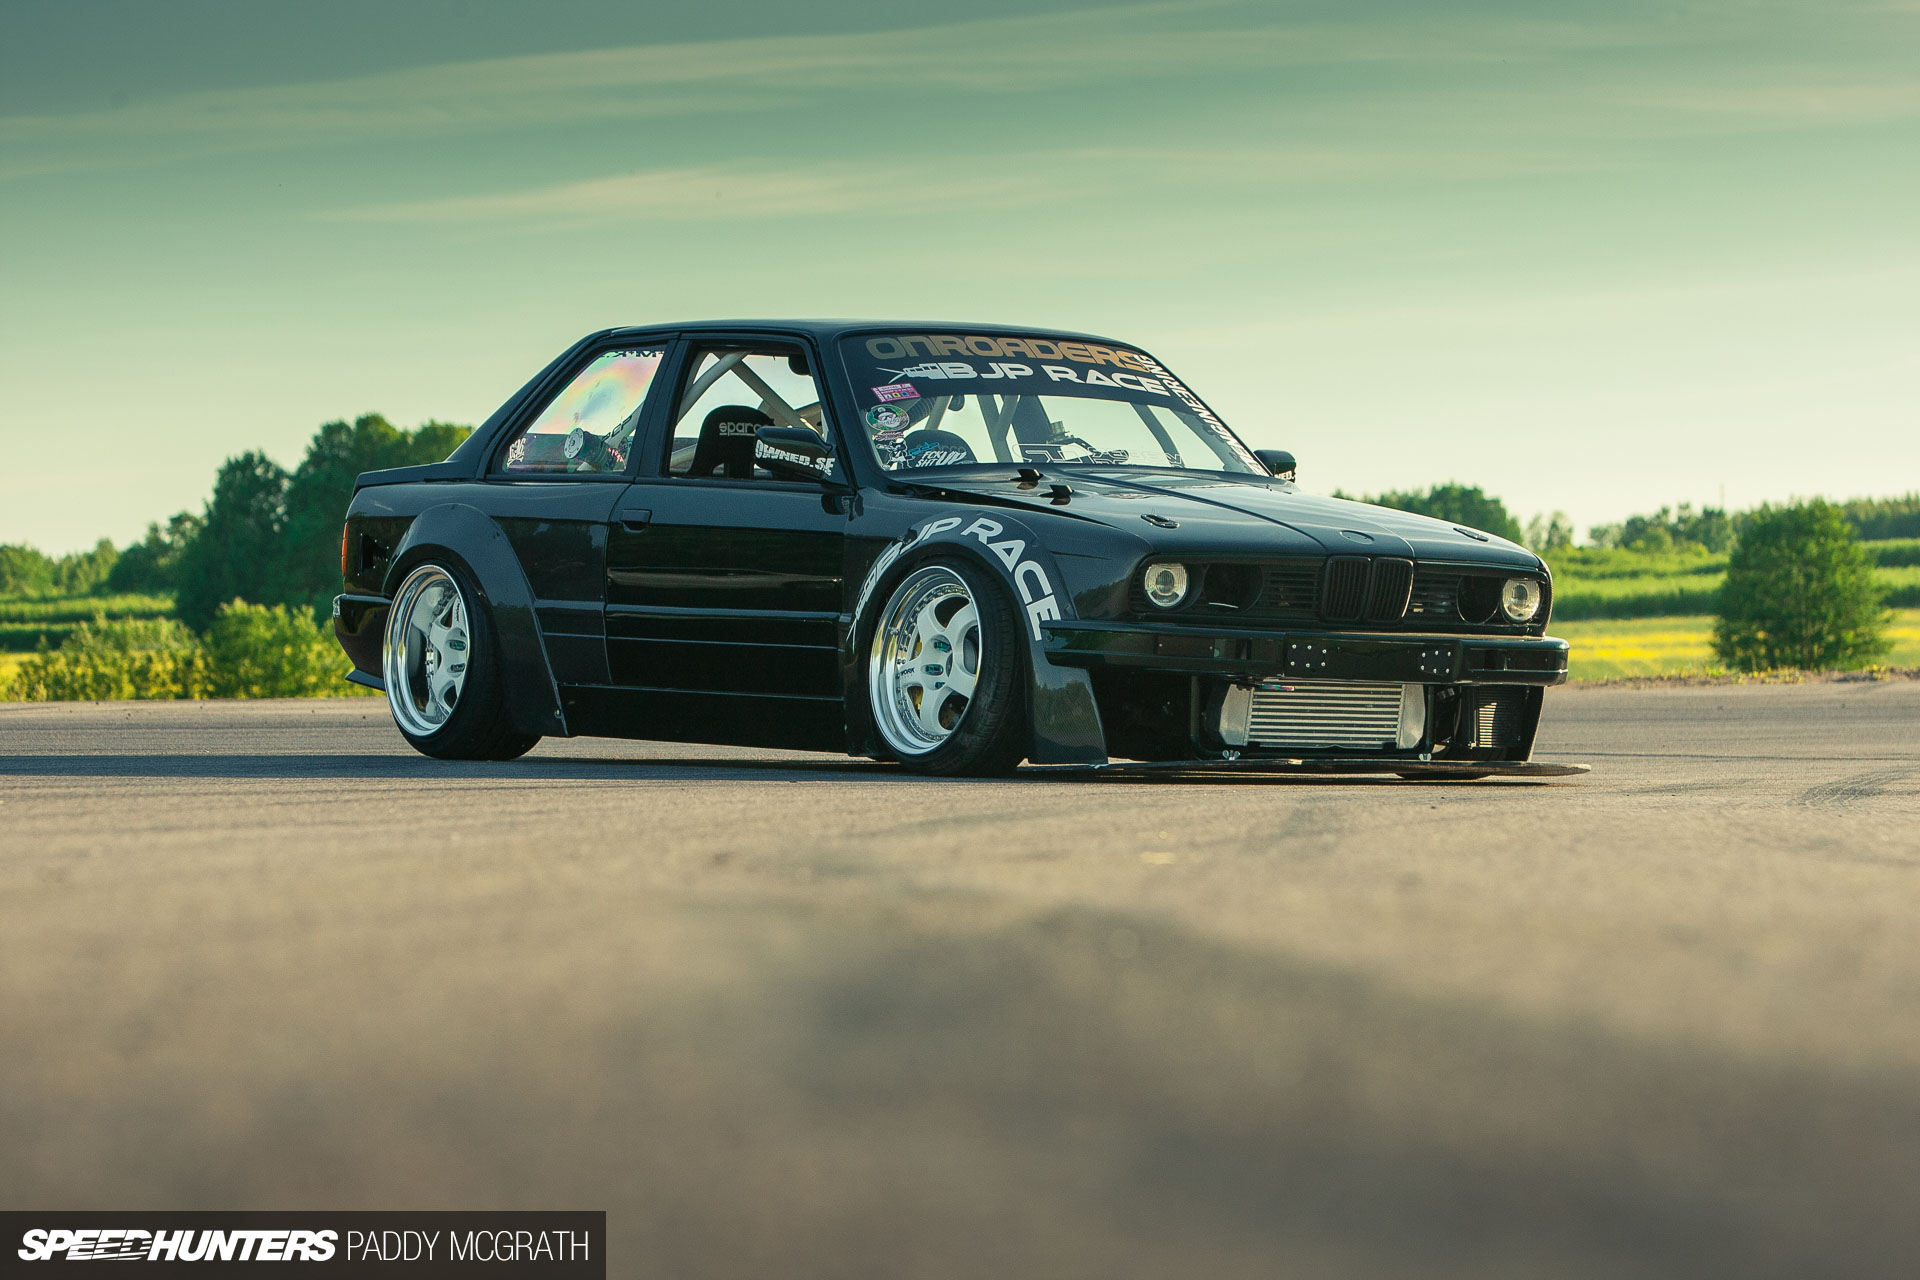 2JZ, No Sh*t: A Carbon Widebodied BMW - Speedhunters